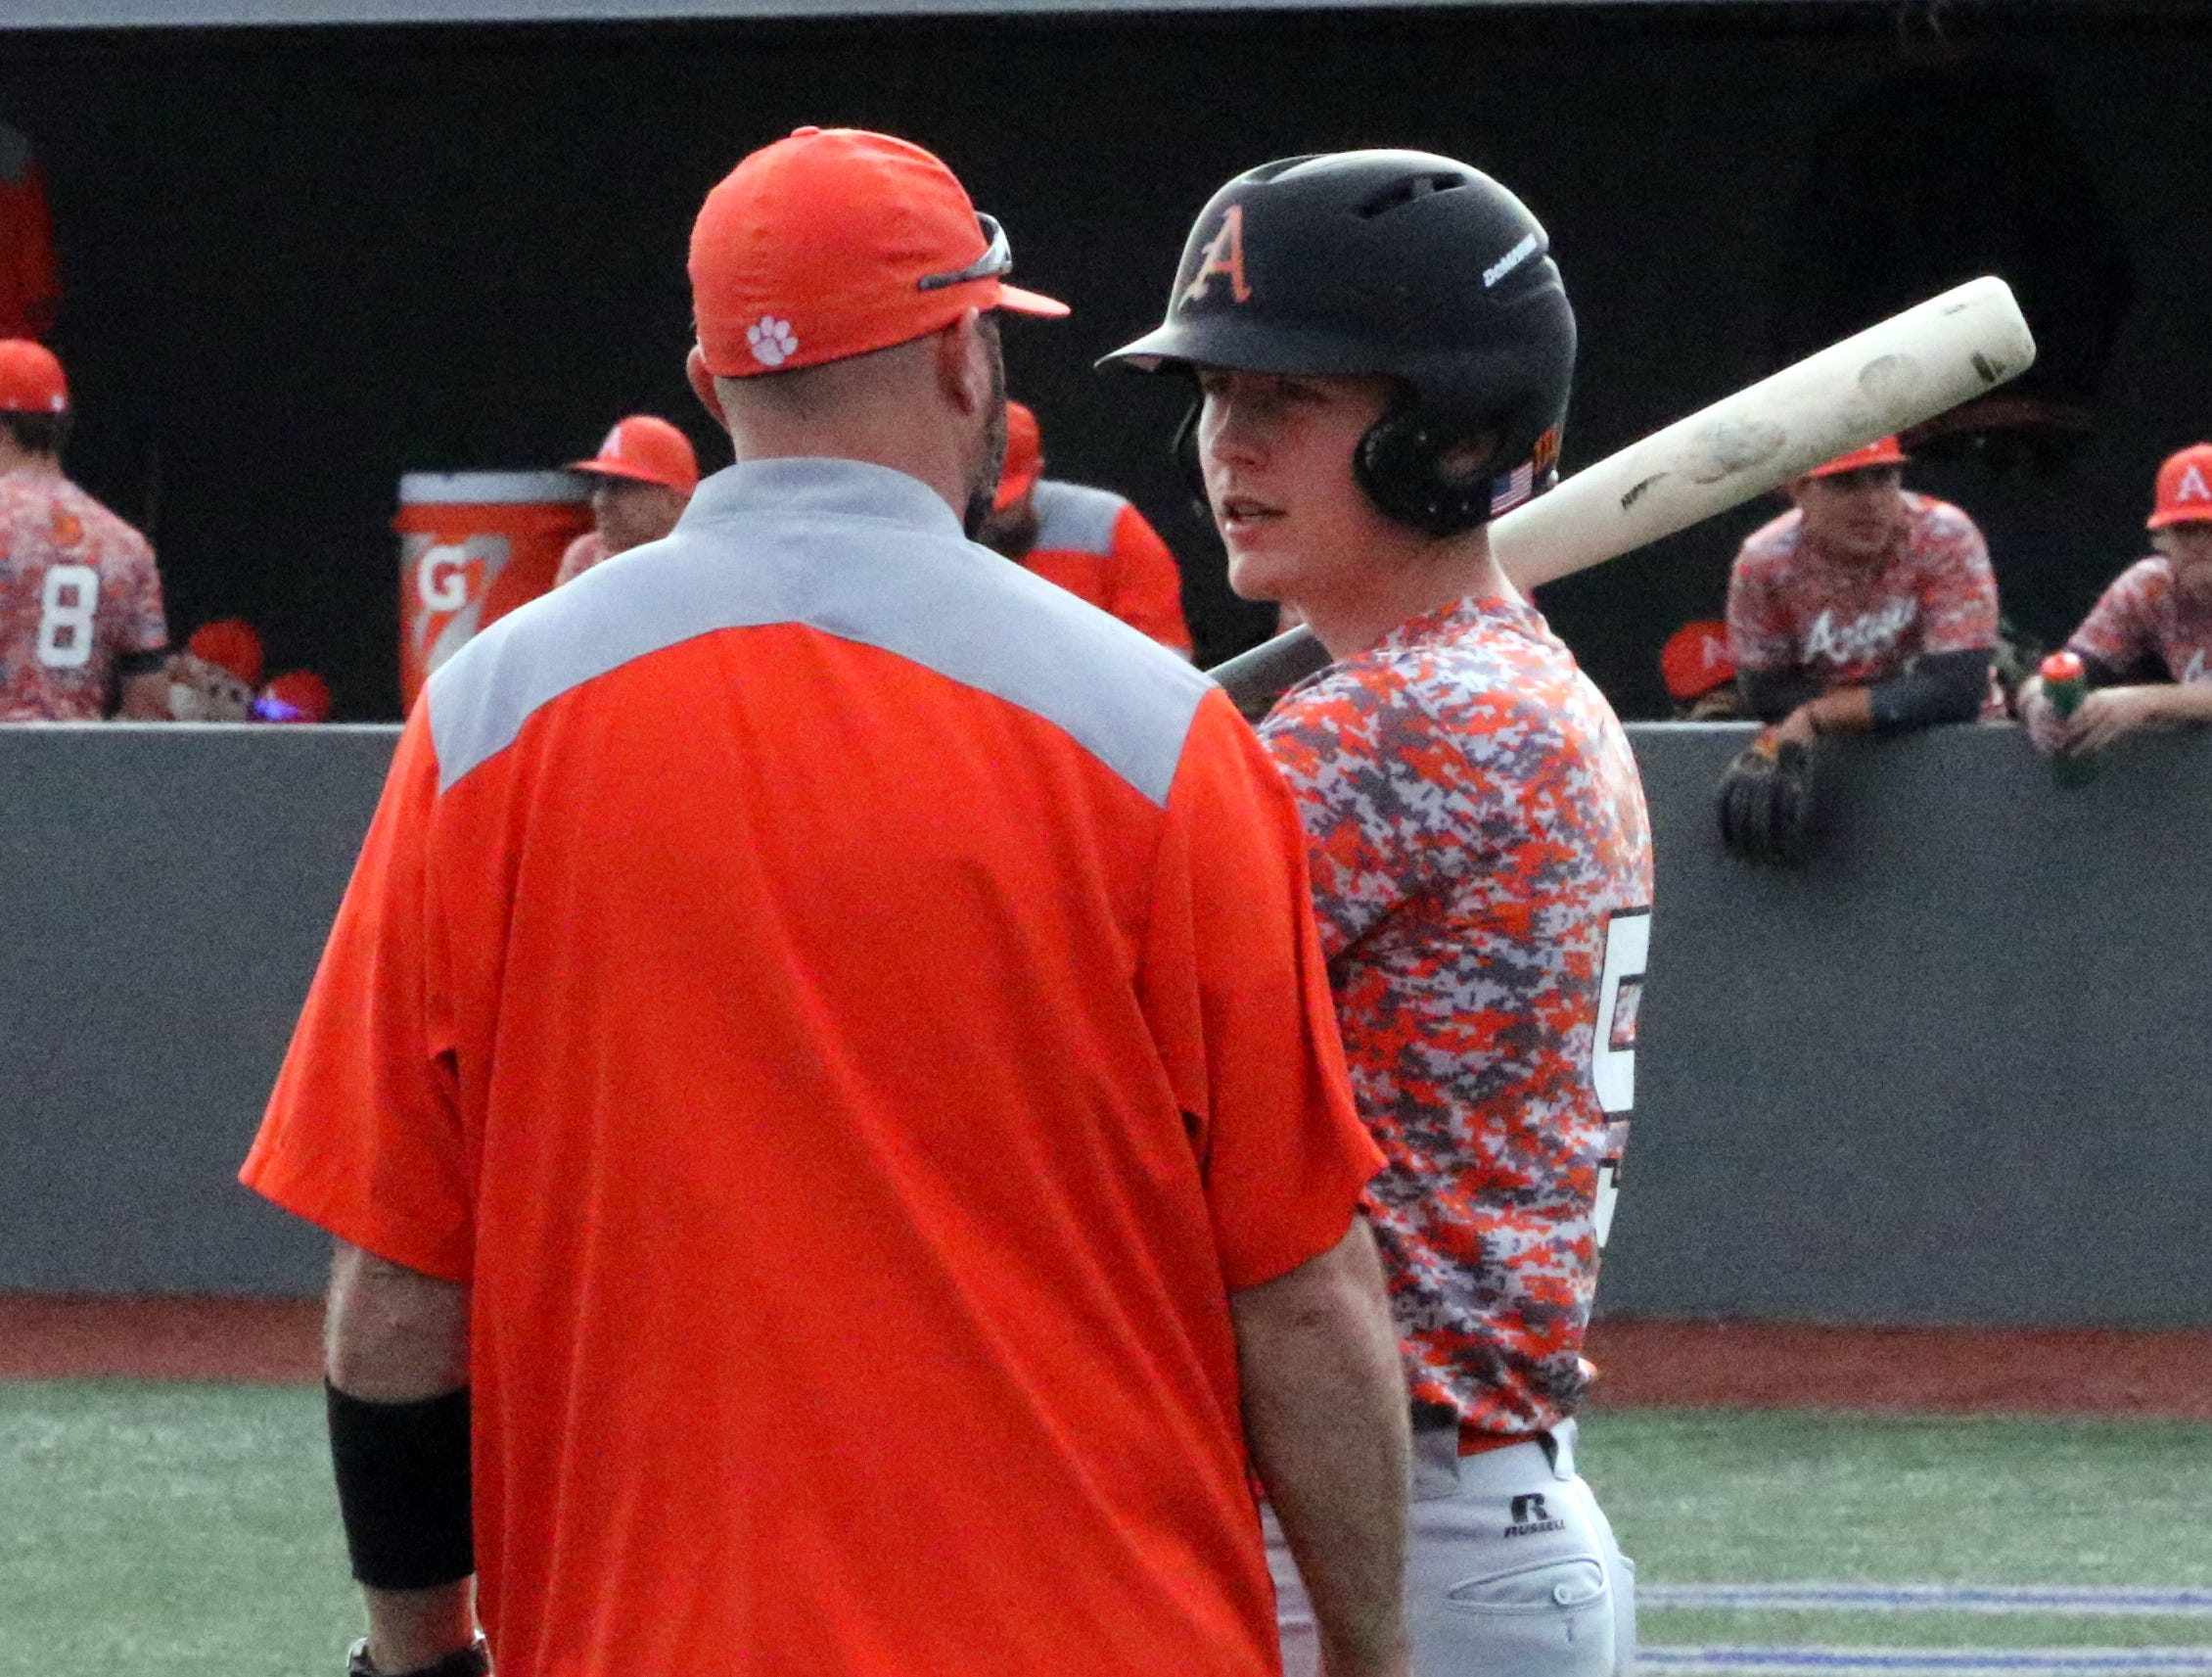 Artesia coach JJ Ortiz goes over instructions with Collin Turner during Thursday's game against Valencia. Artesia won, 12-5.Artesia won, 12-5.